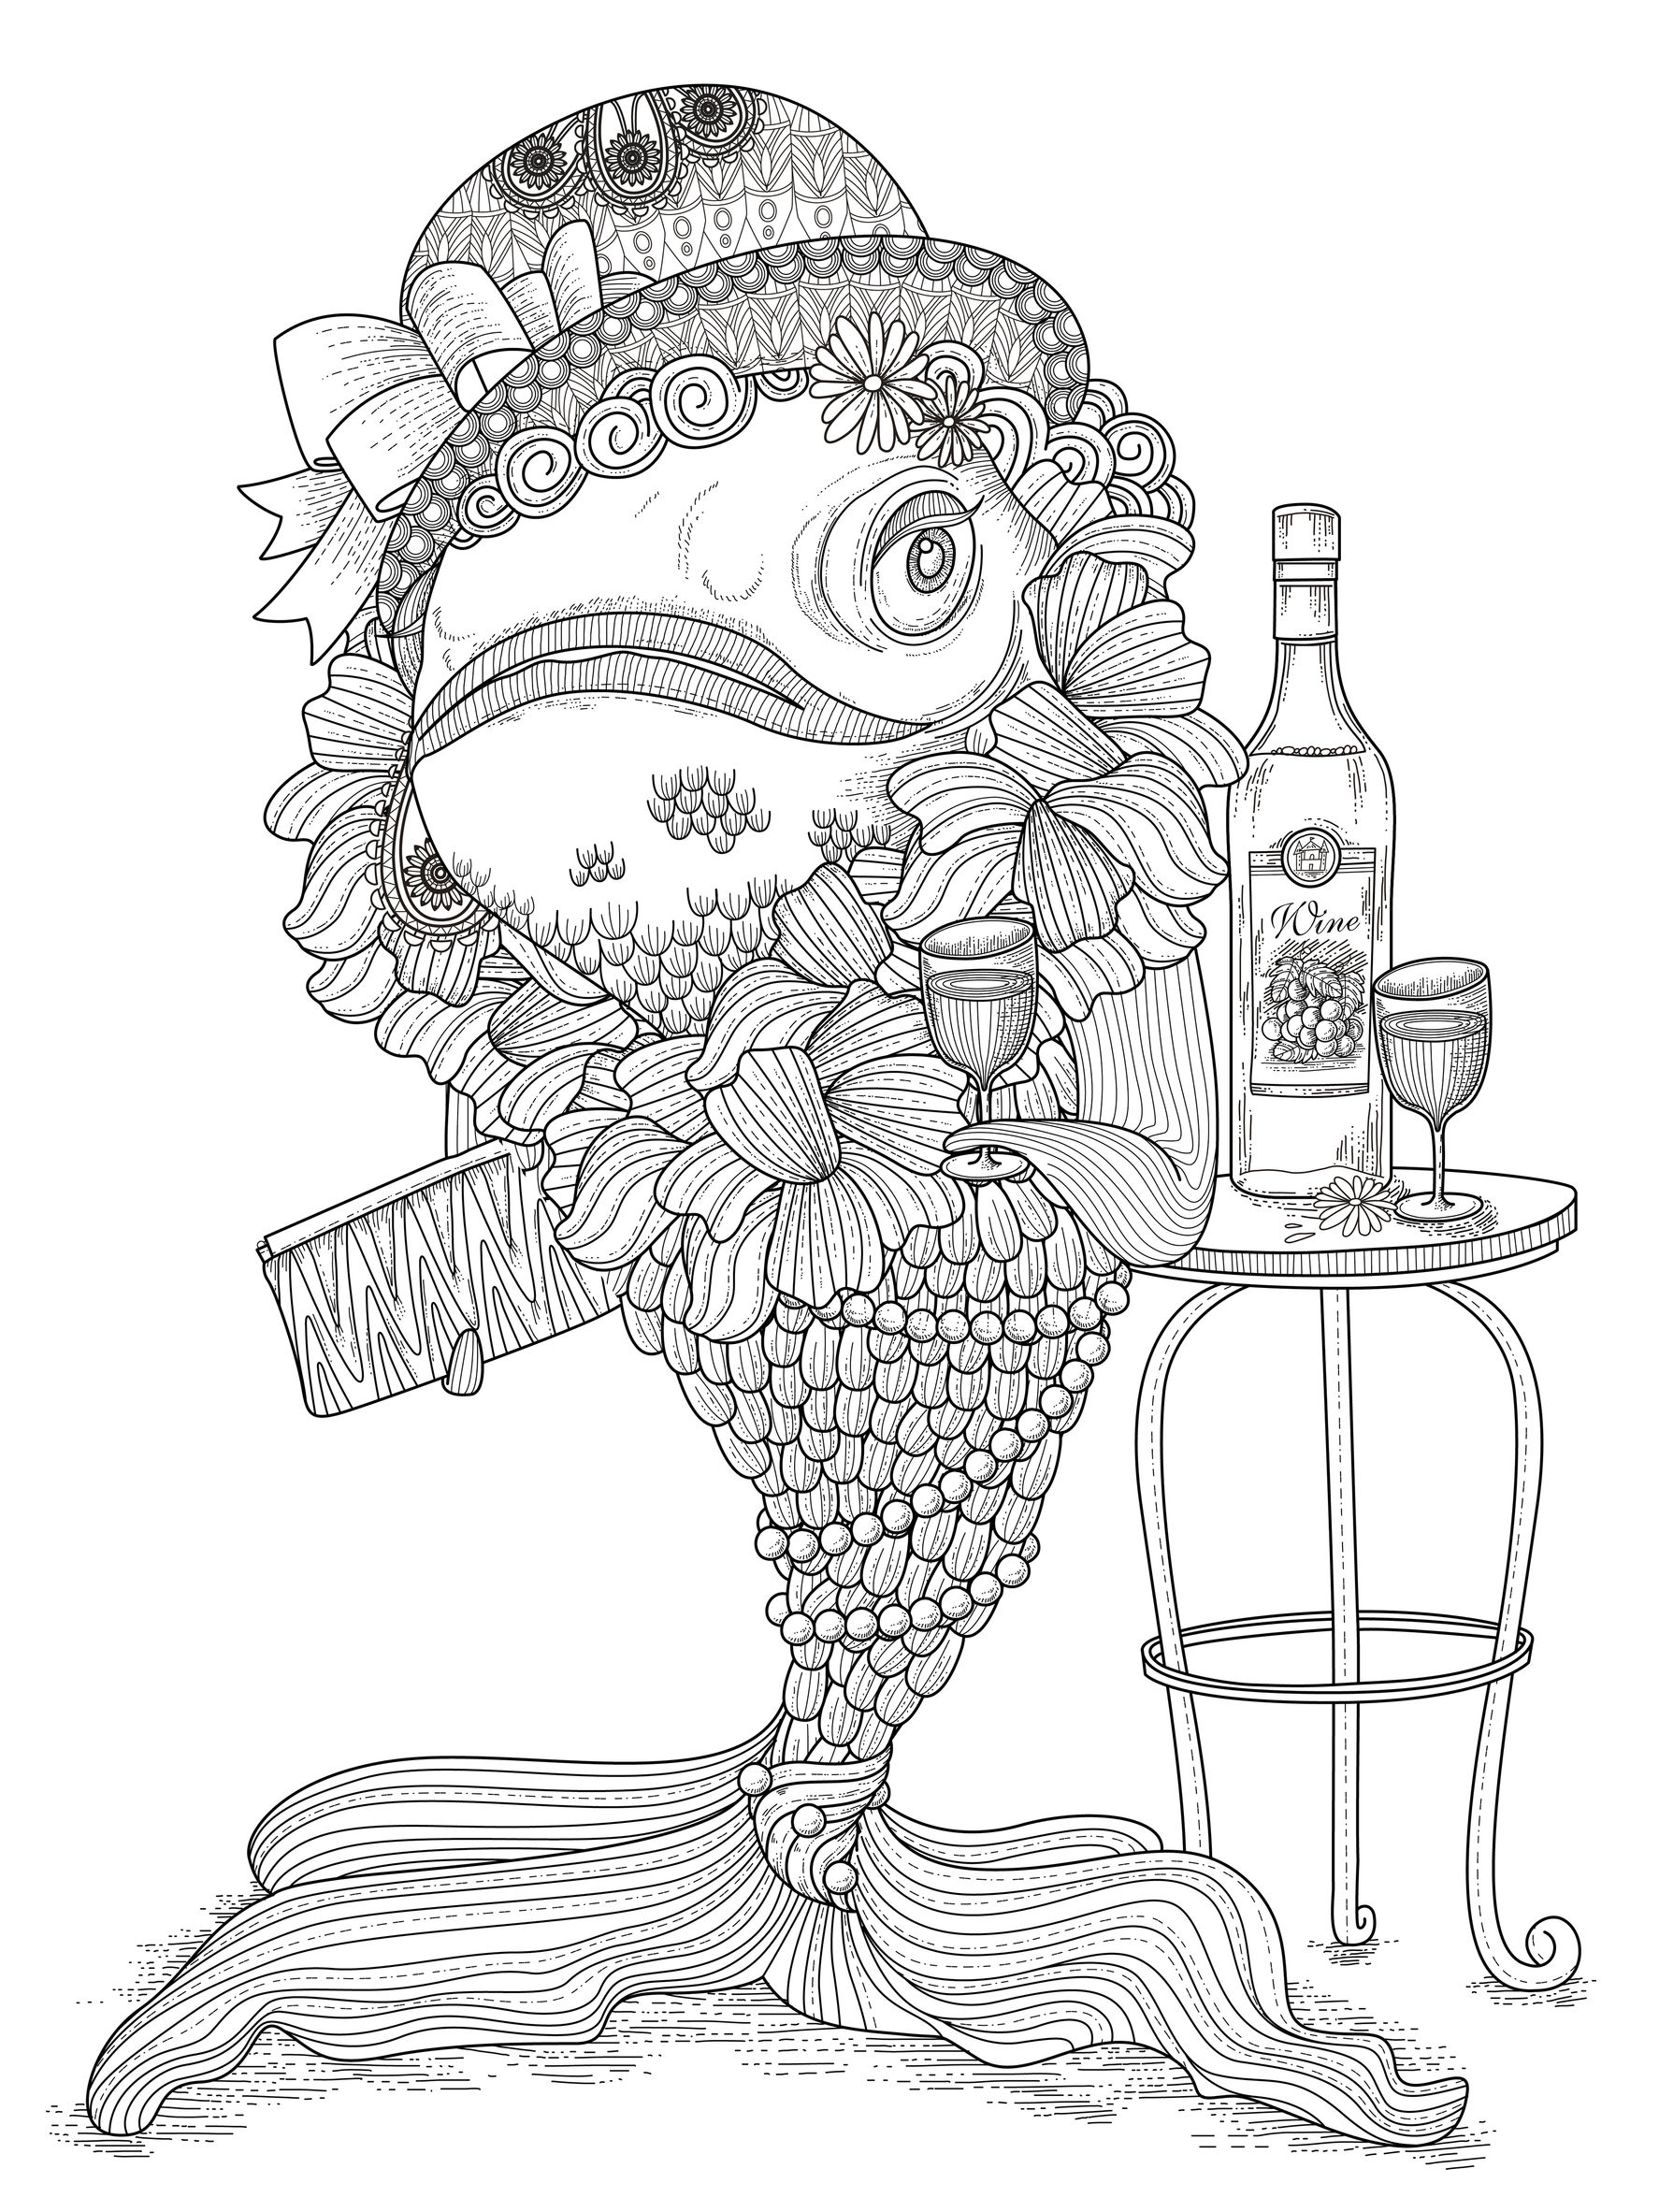 an coloring page of a fish very funny from the gallery water worlds - Fish Coloring Pages For Adults